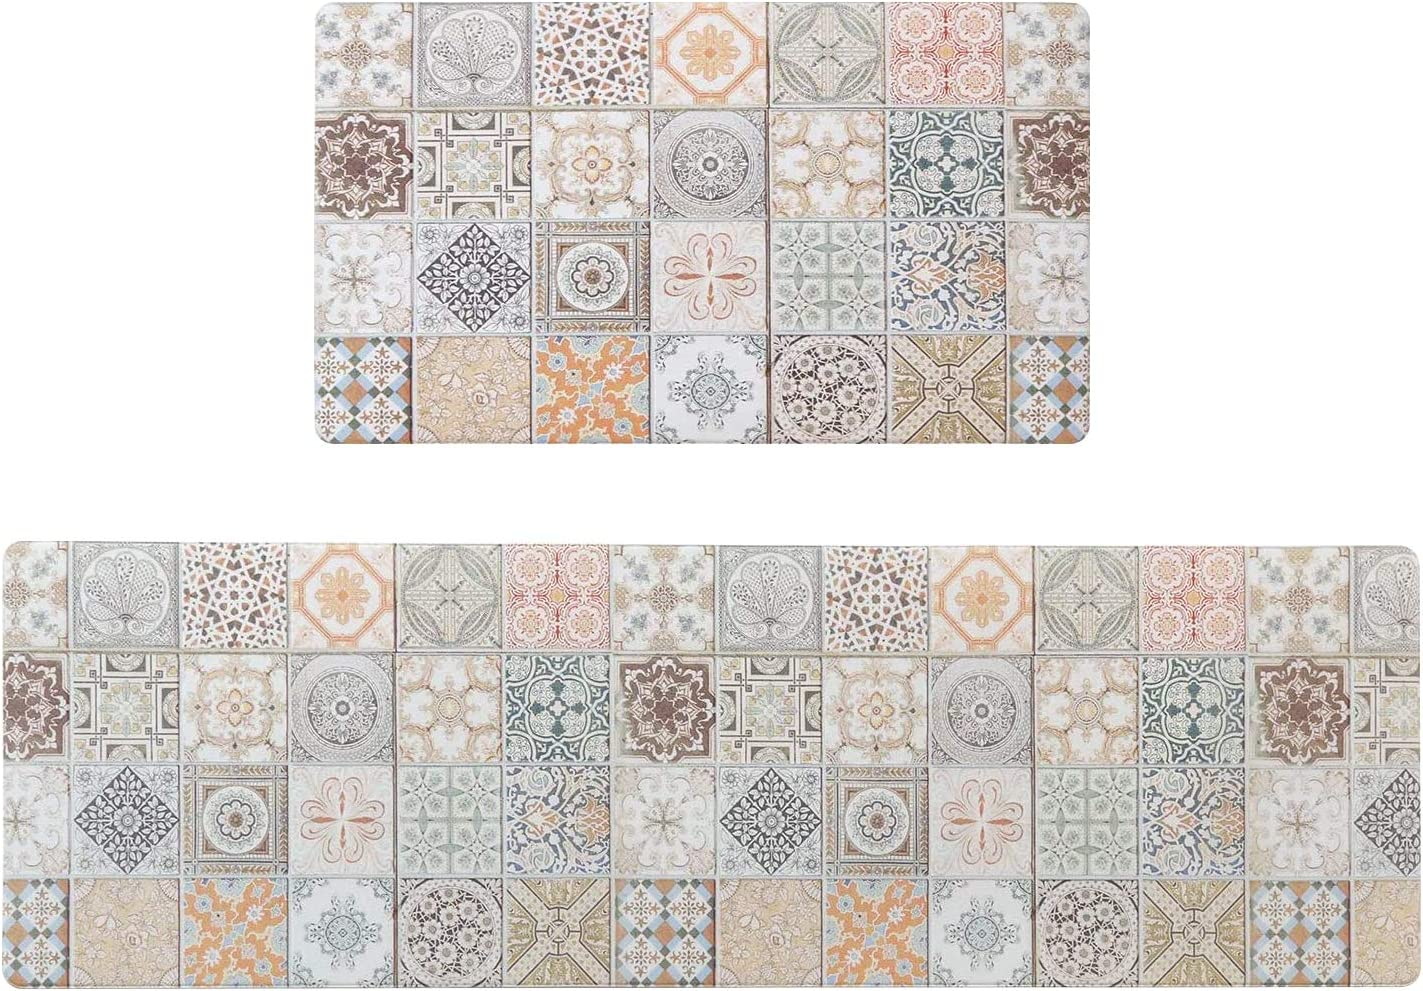 Ailsan Bohemia Anti Fatigue Kitchen Department store Rugs and Mats Piece Set 1 Omaha Mall 2